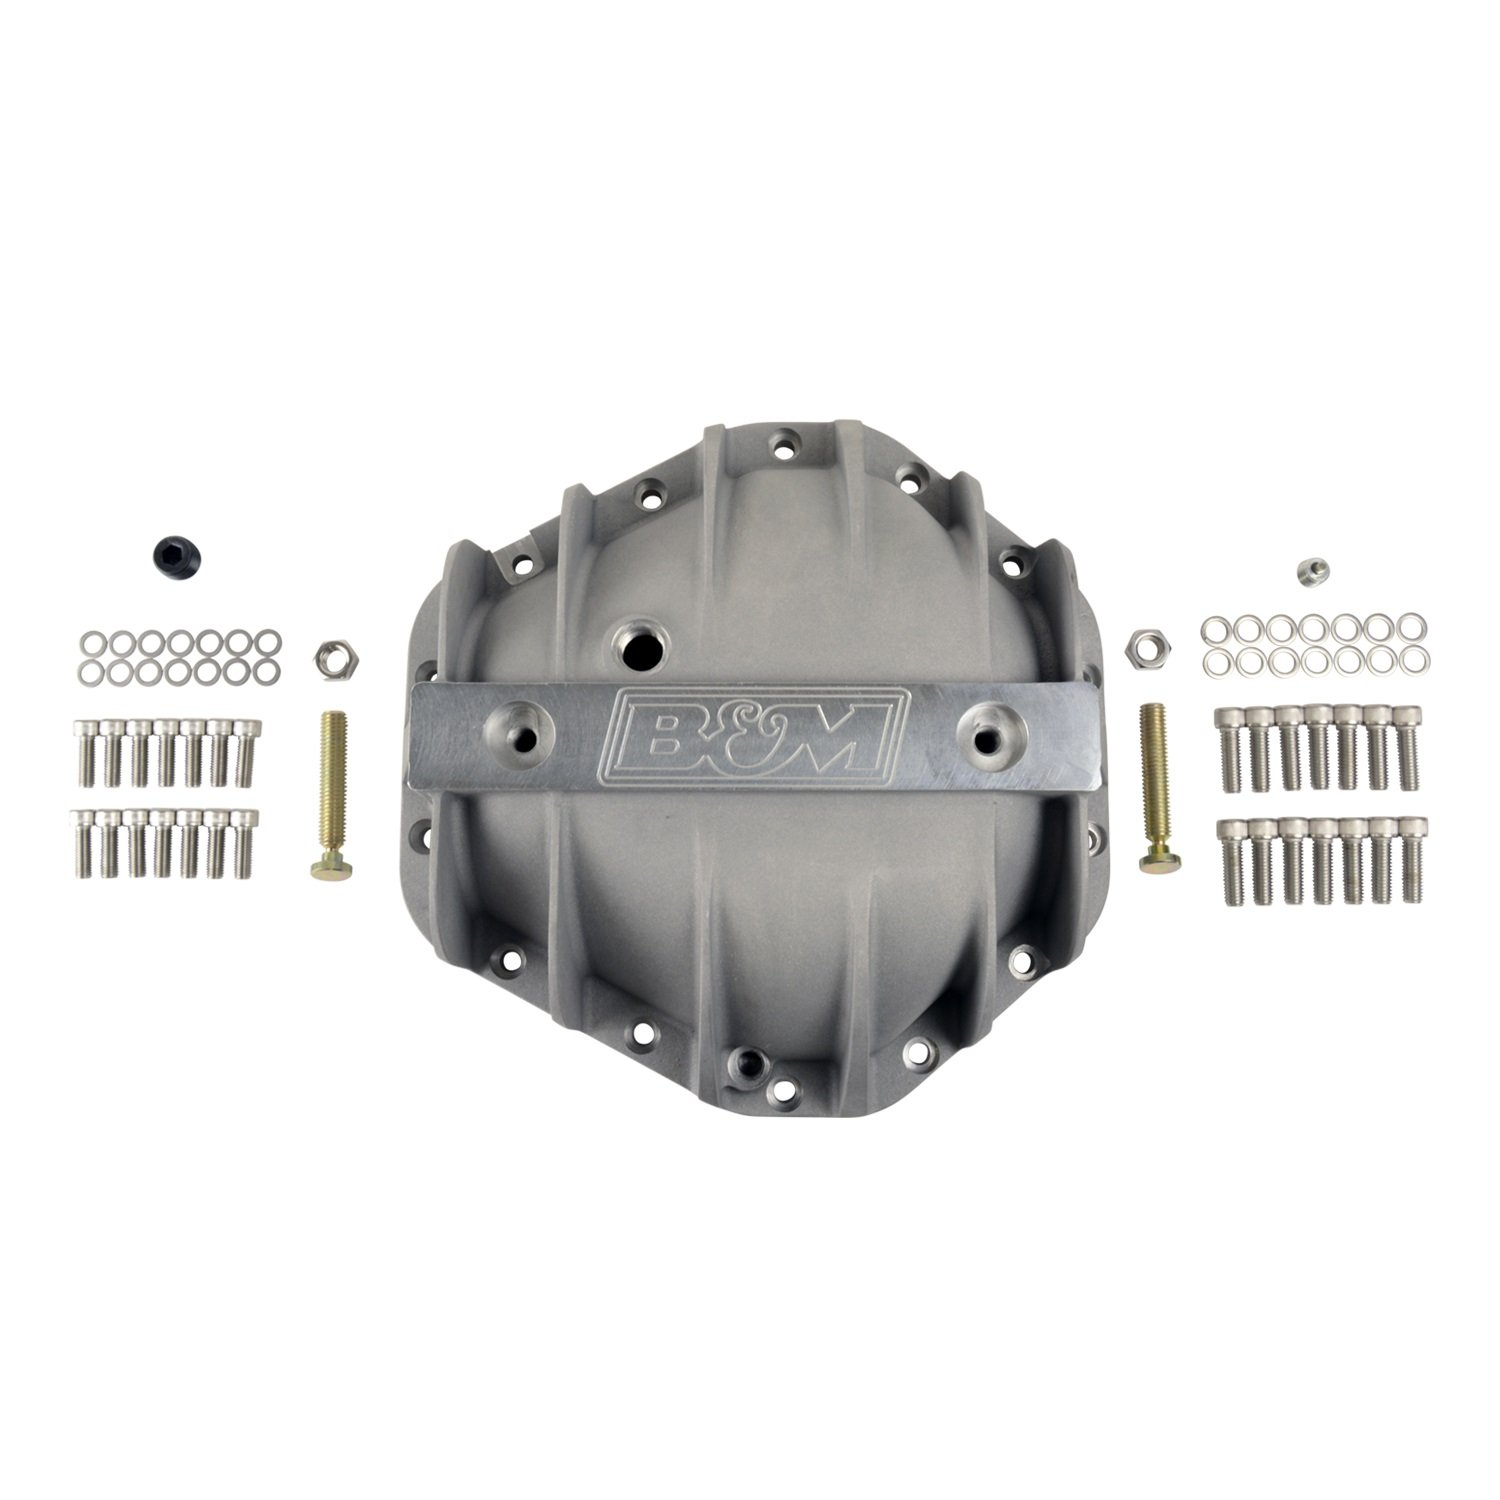 B&M (70501) 10.5' Cast Aluminum 14-Bolt Rear End Differential Cover